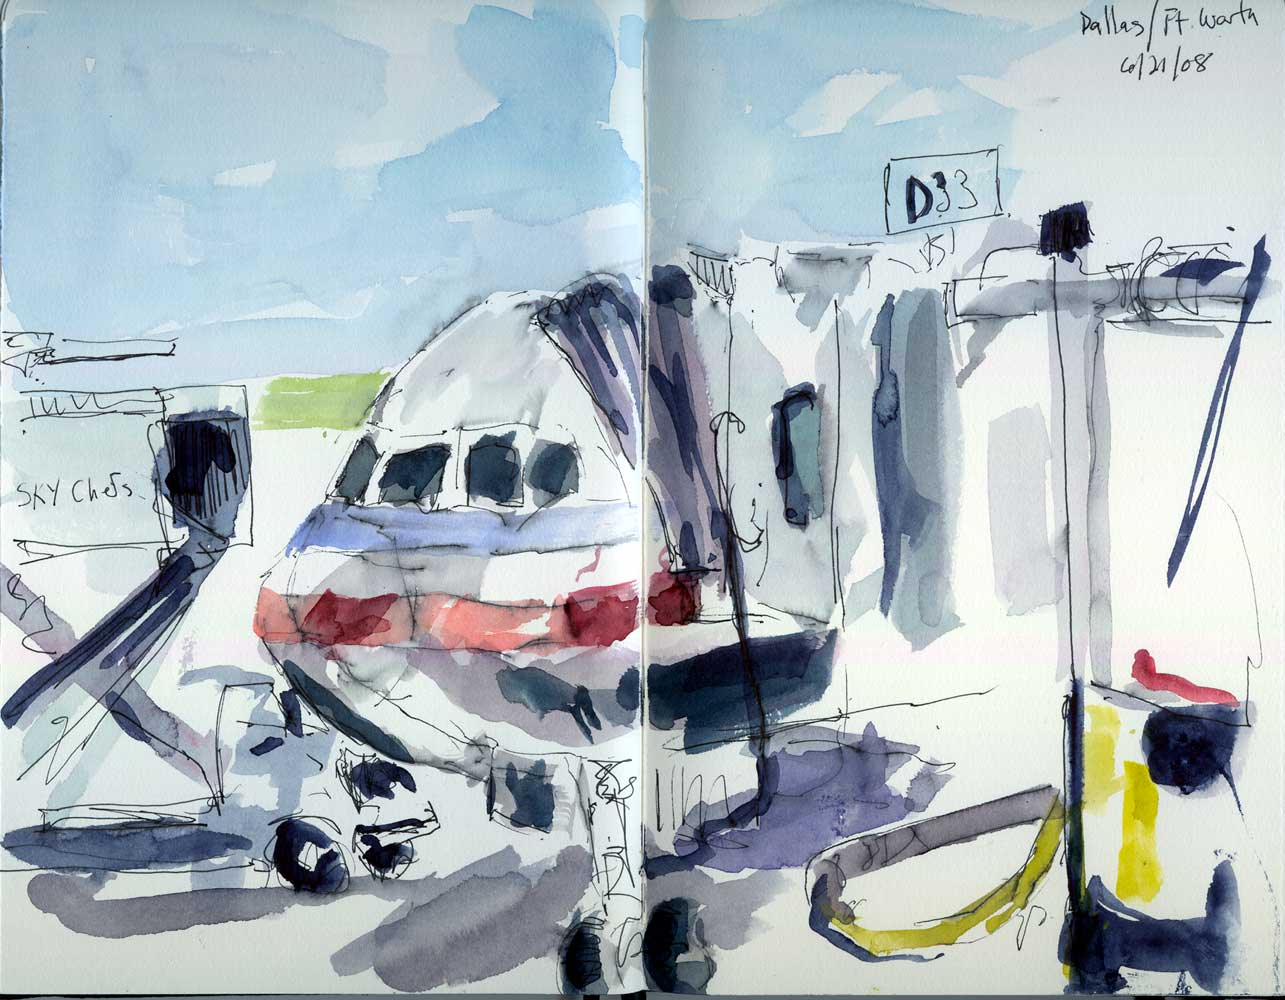 Airport Sketches Bill Sharp Paintings Blog